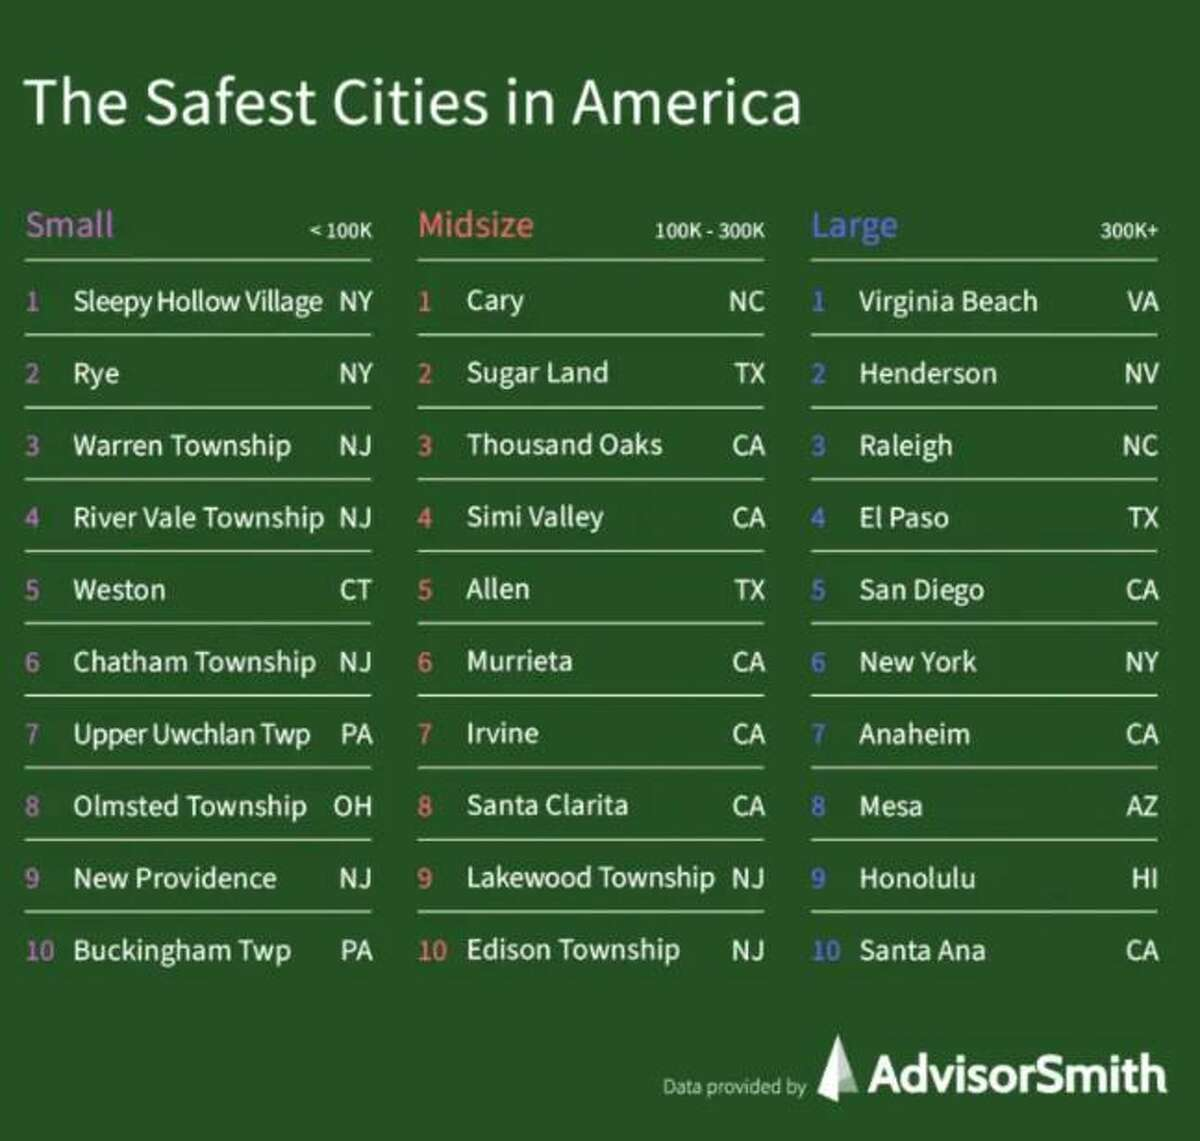 Sugar Land is the second safest midsize city in America, according to a recent study by New York-based research firm AdvisorSmith.